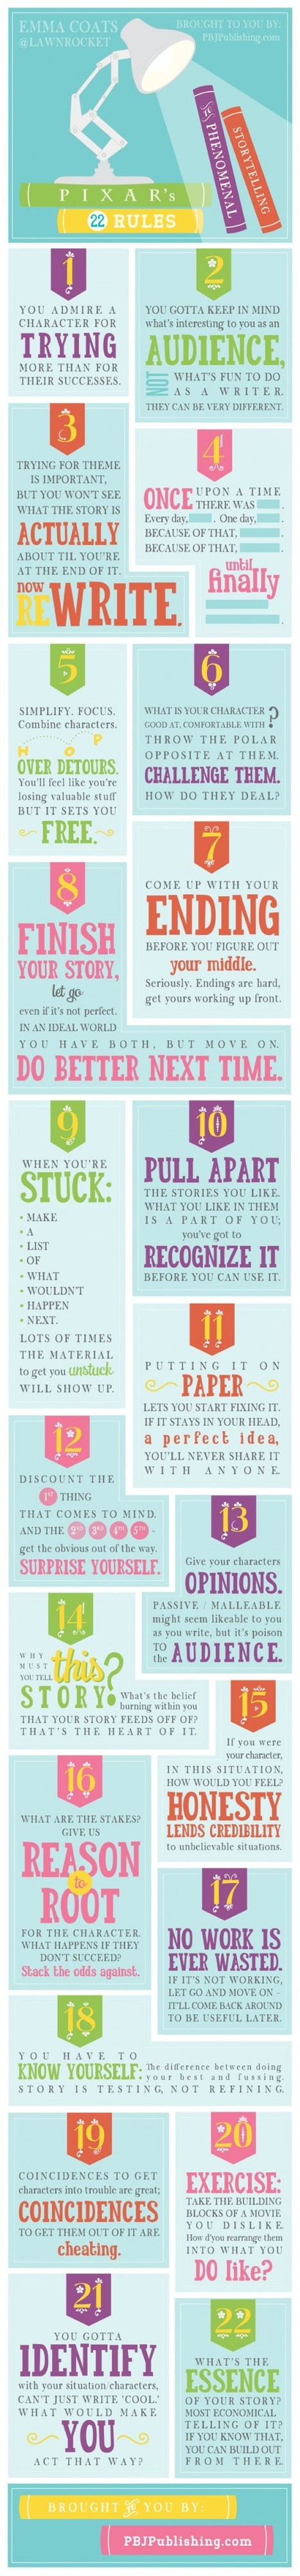 Pixar's 22 Rules to Phenomenal Storytelling [INFOGRAPHIC] | Stories and storytelling | Scoop.it